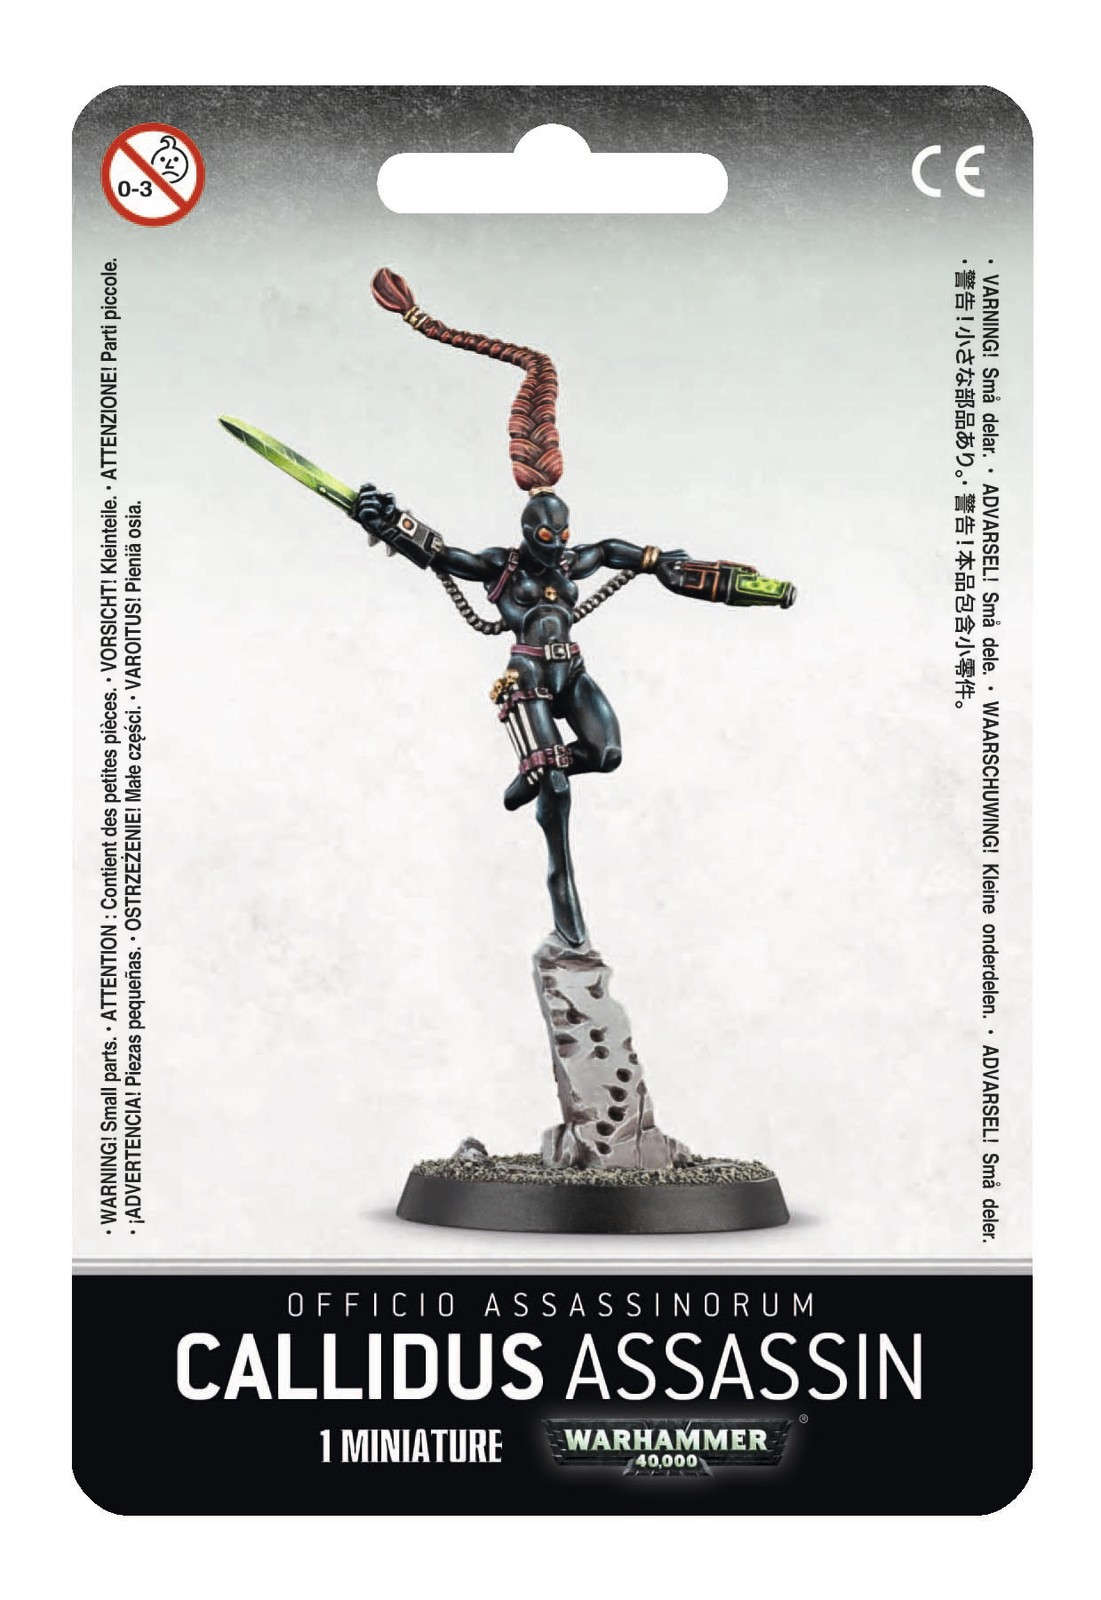 Warhammer 40,000 Officio Assassinorum: Callidus Assassin image